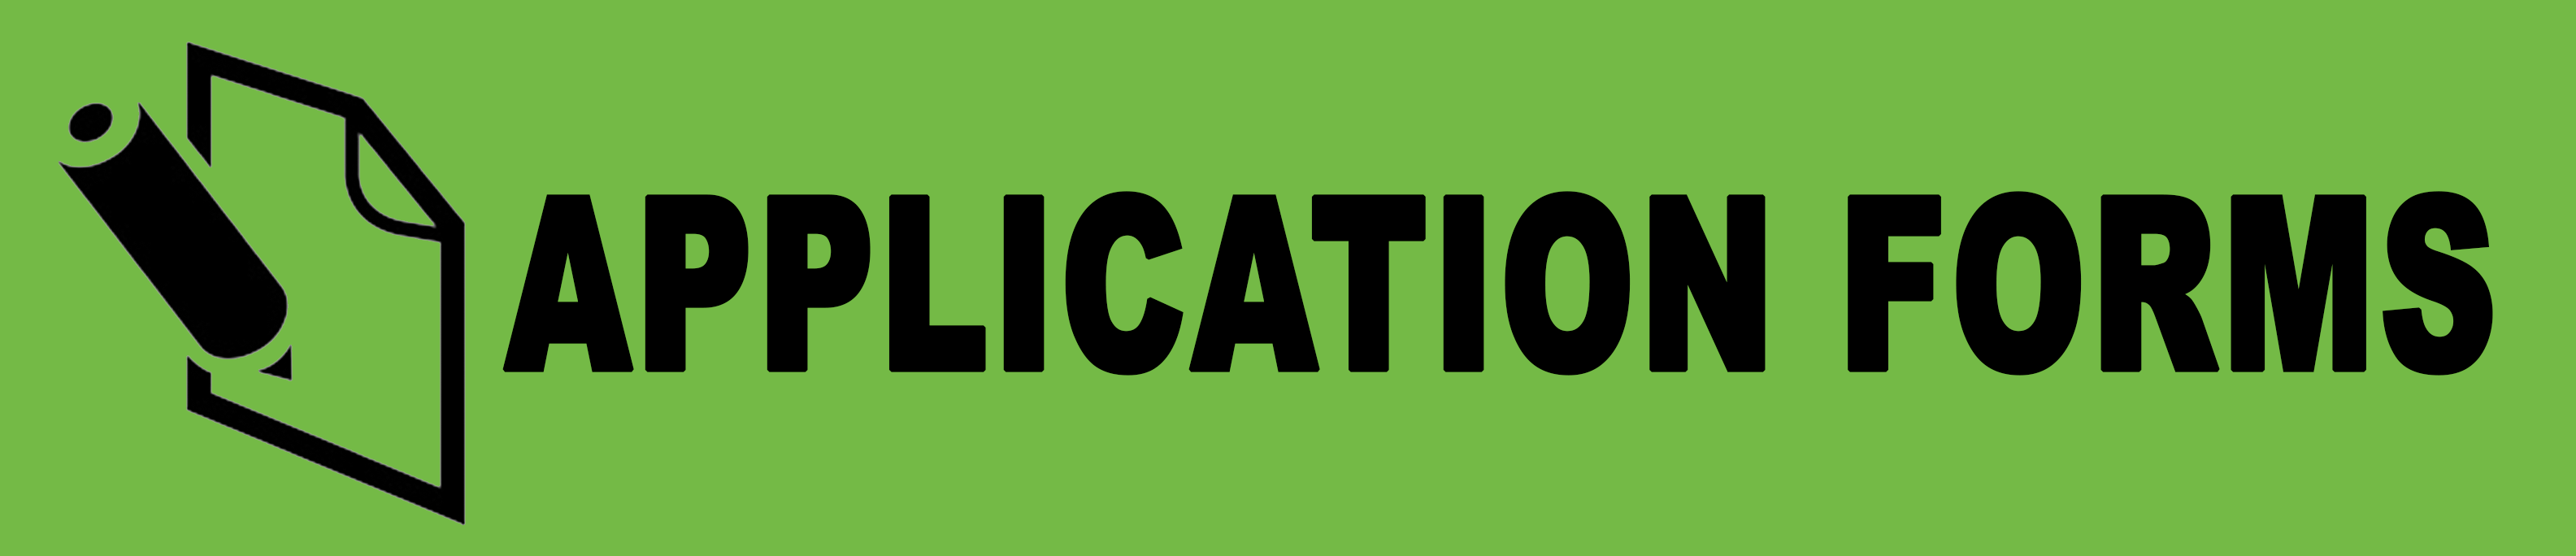 application_banner_vector1.png